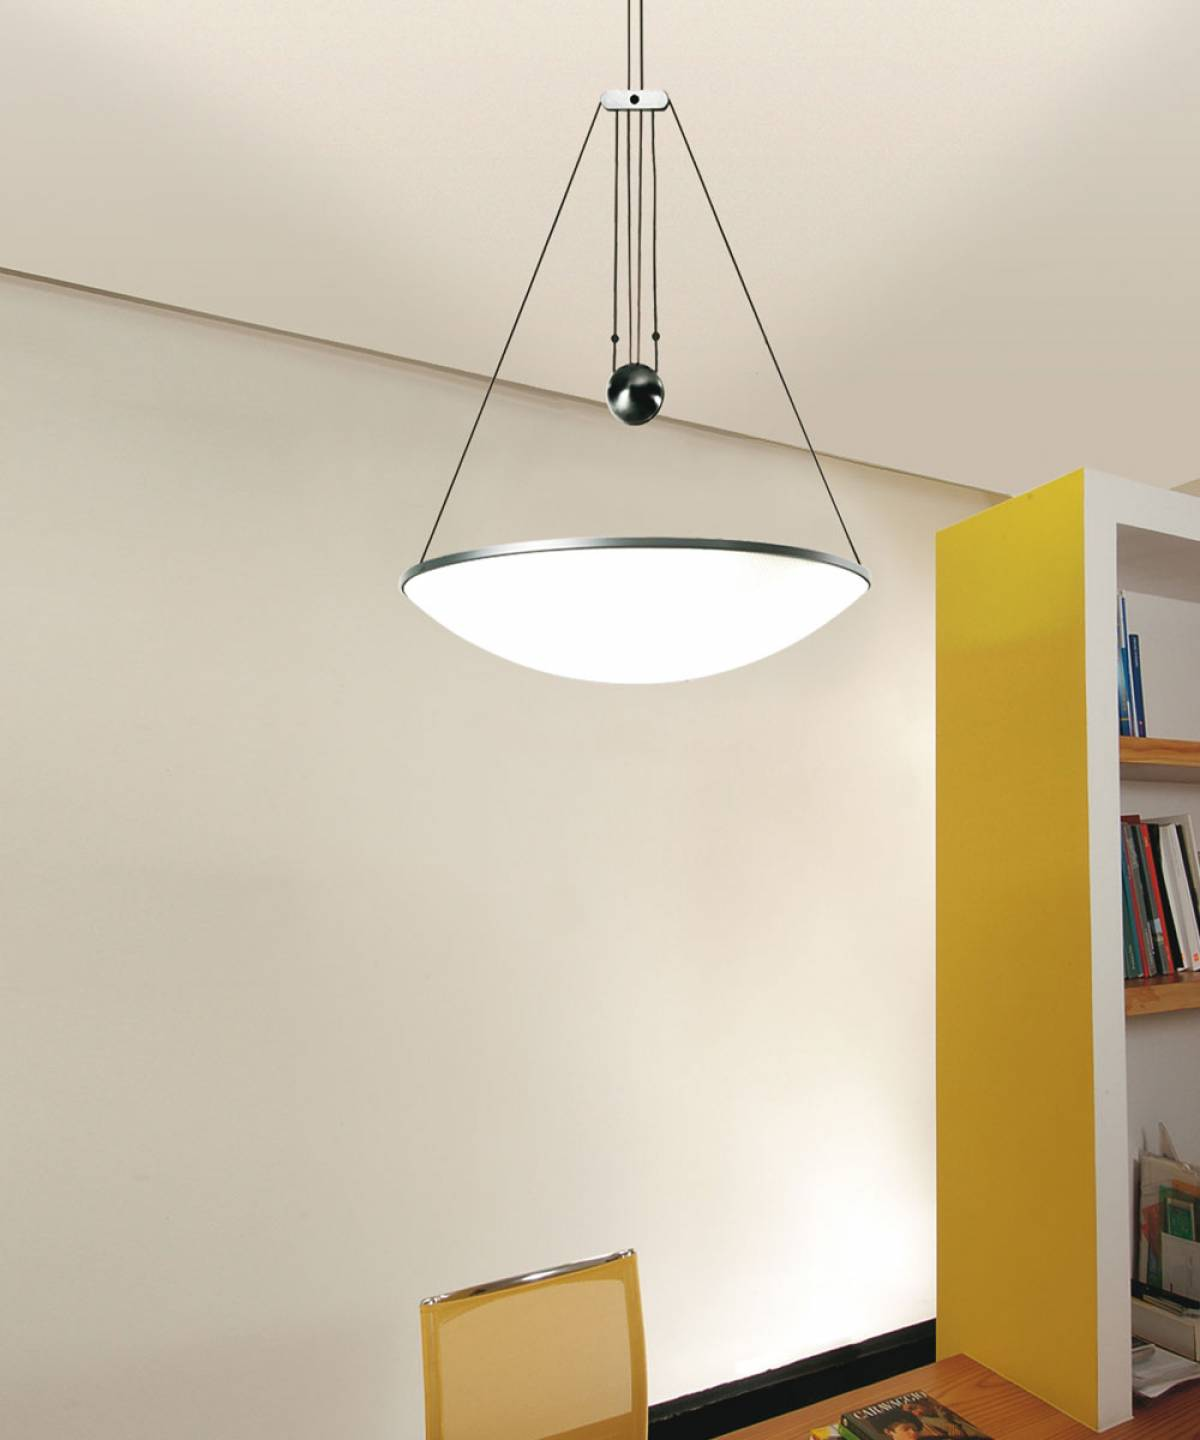 2 Trama suspension lamp Luceplan